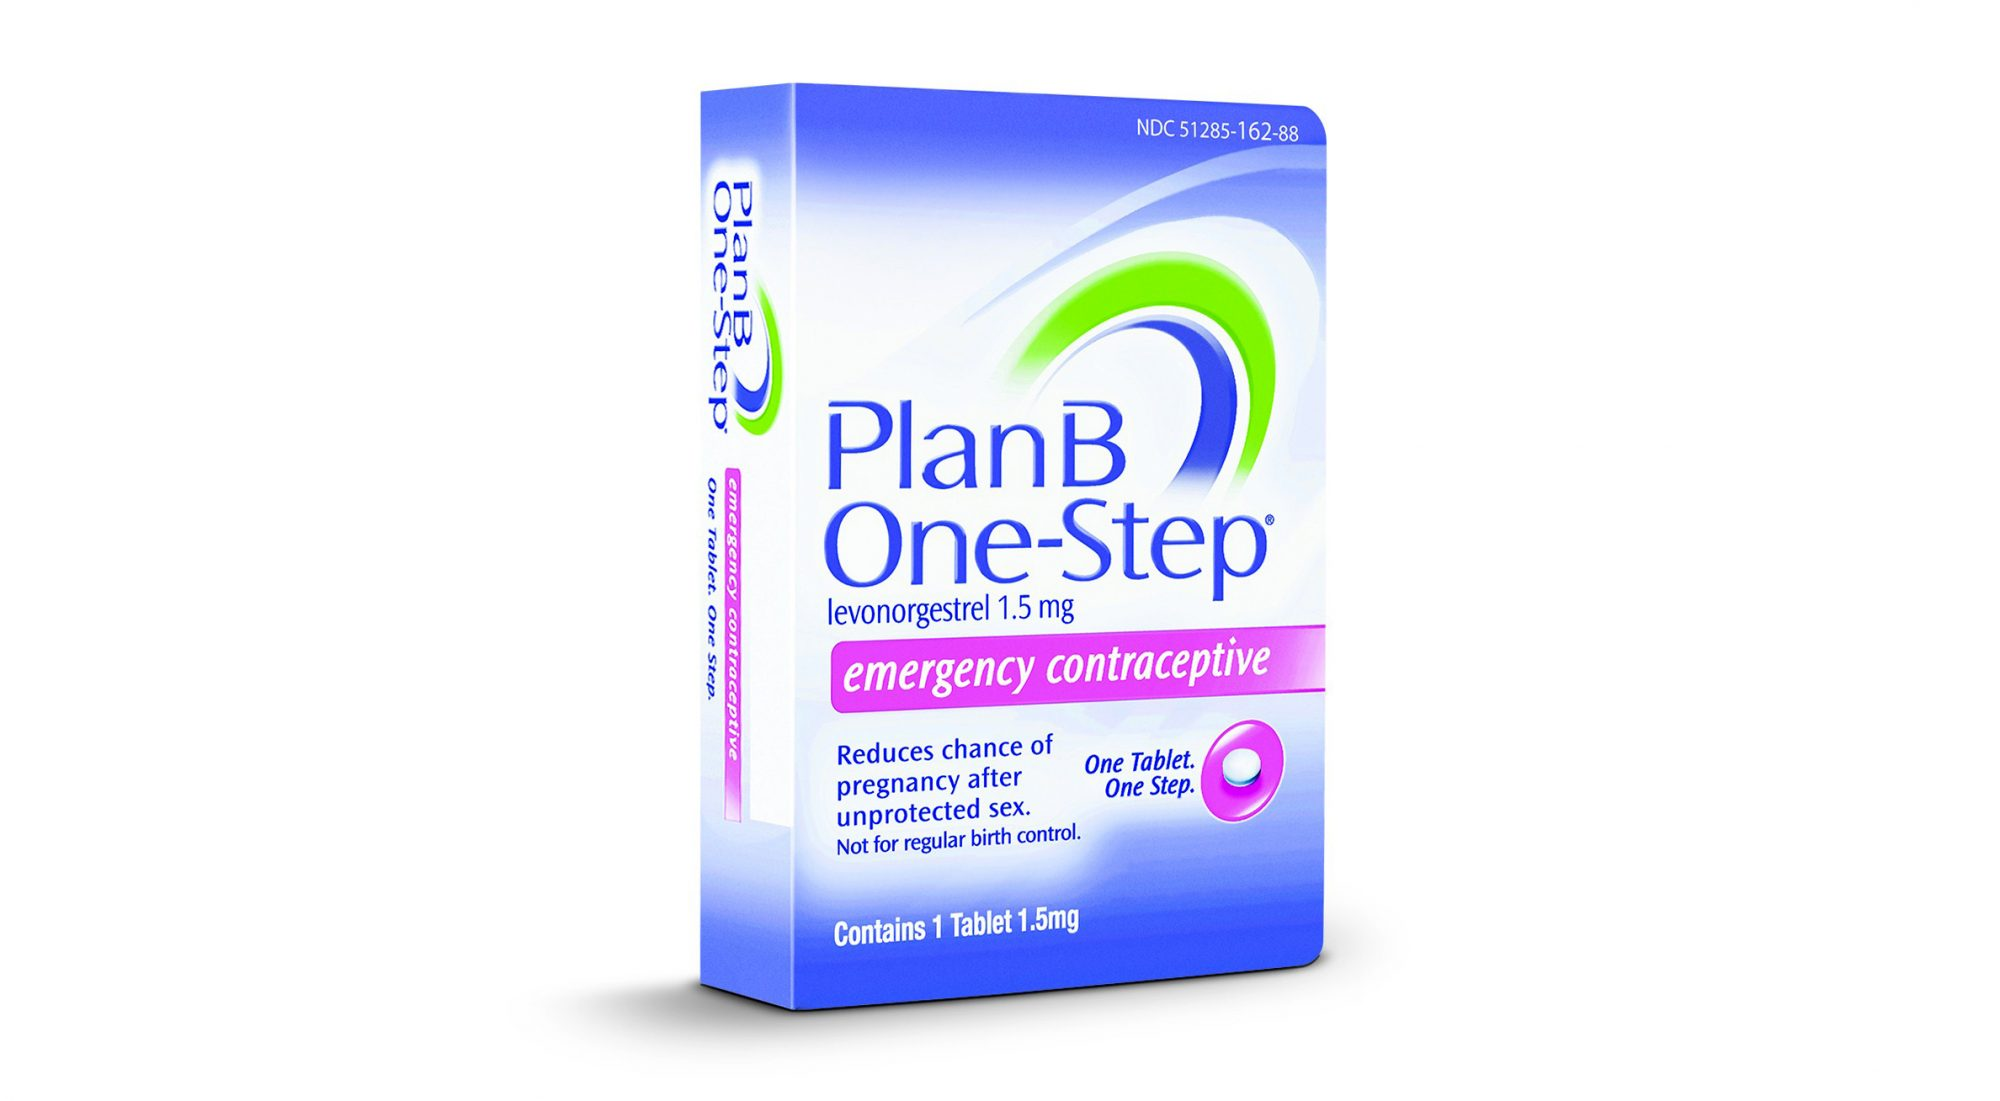 Myth: Plan B is an abortion pill